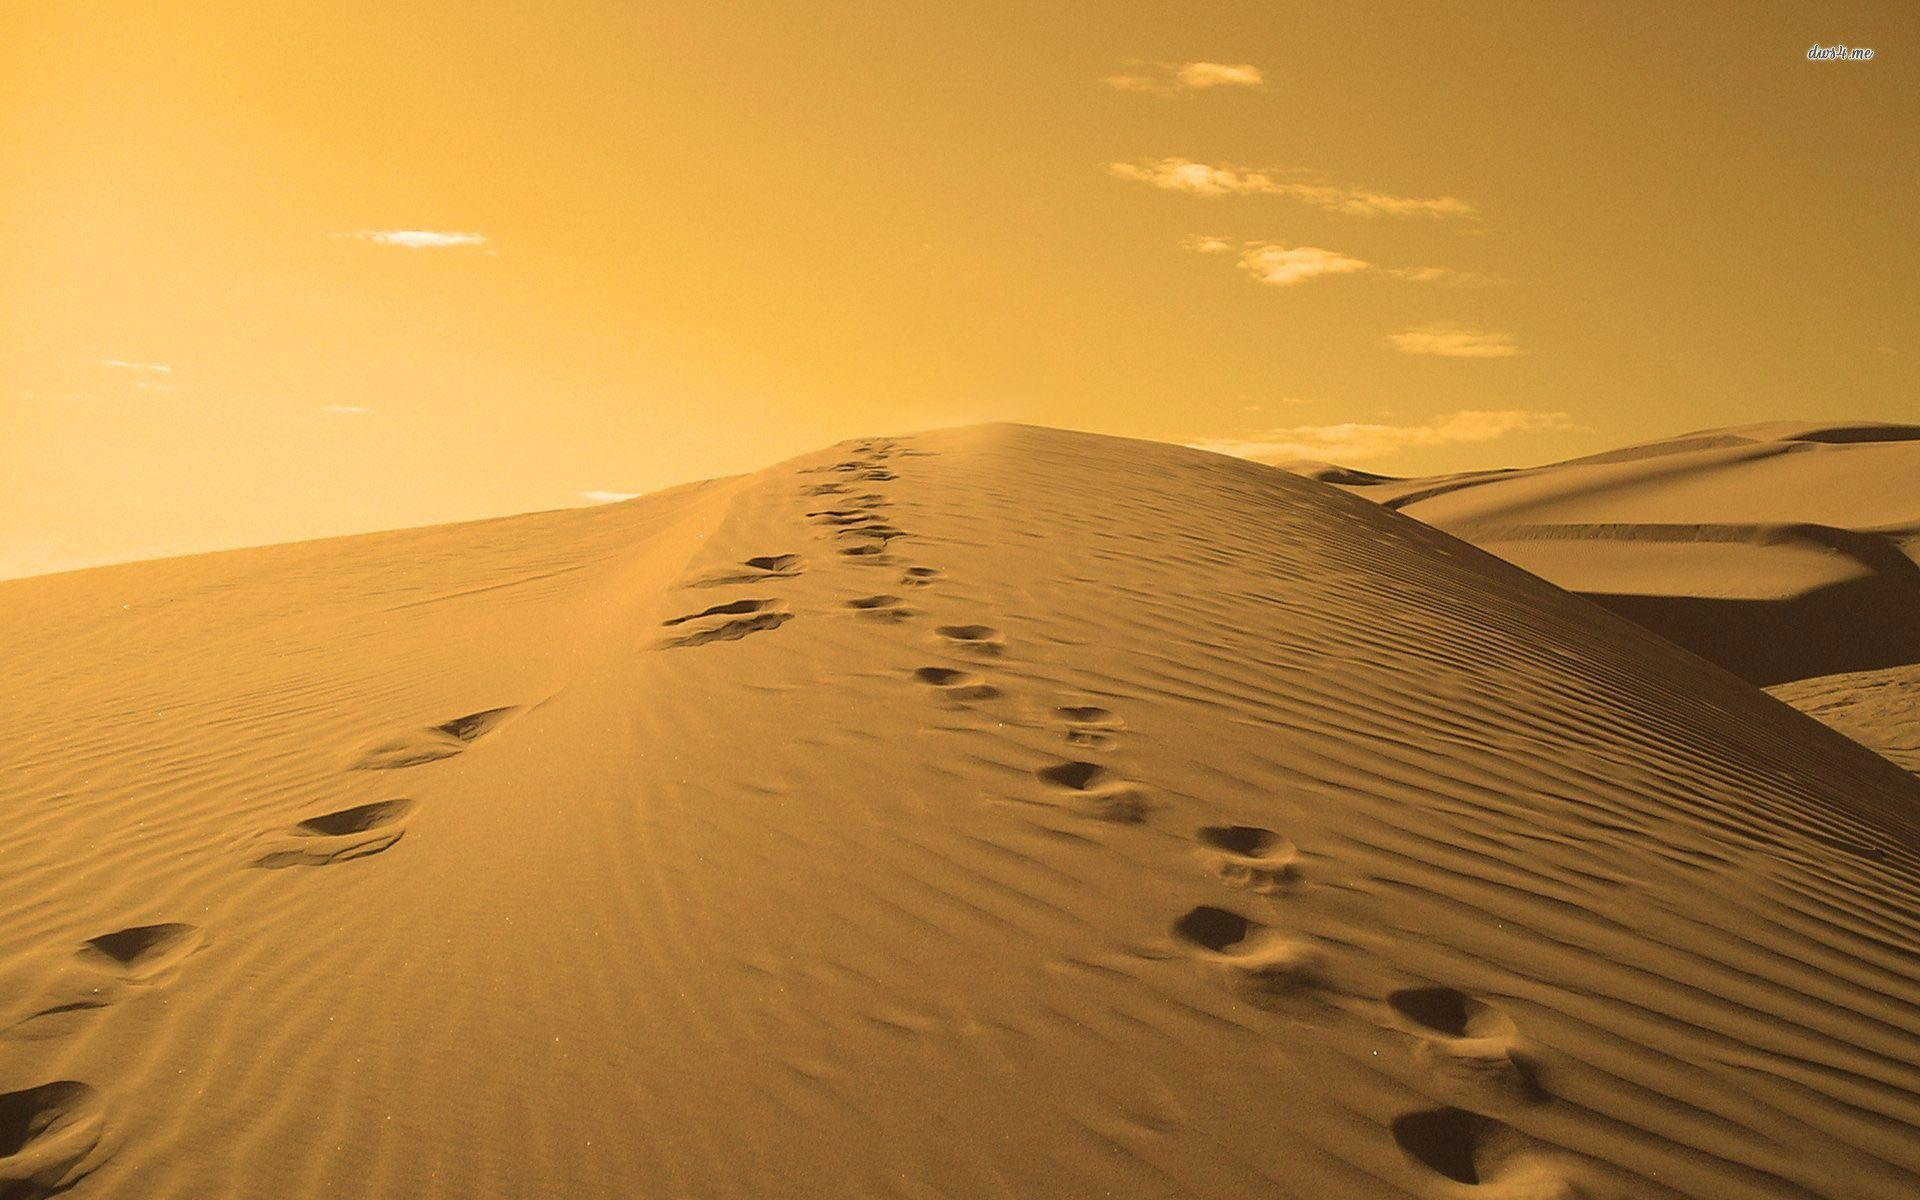 Man Cave Betekenis : Footprints in the sand wallpapers wallpaper cave